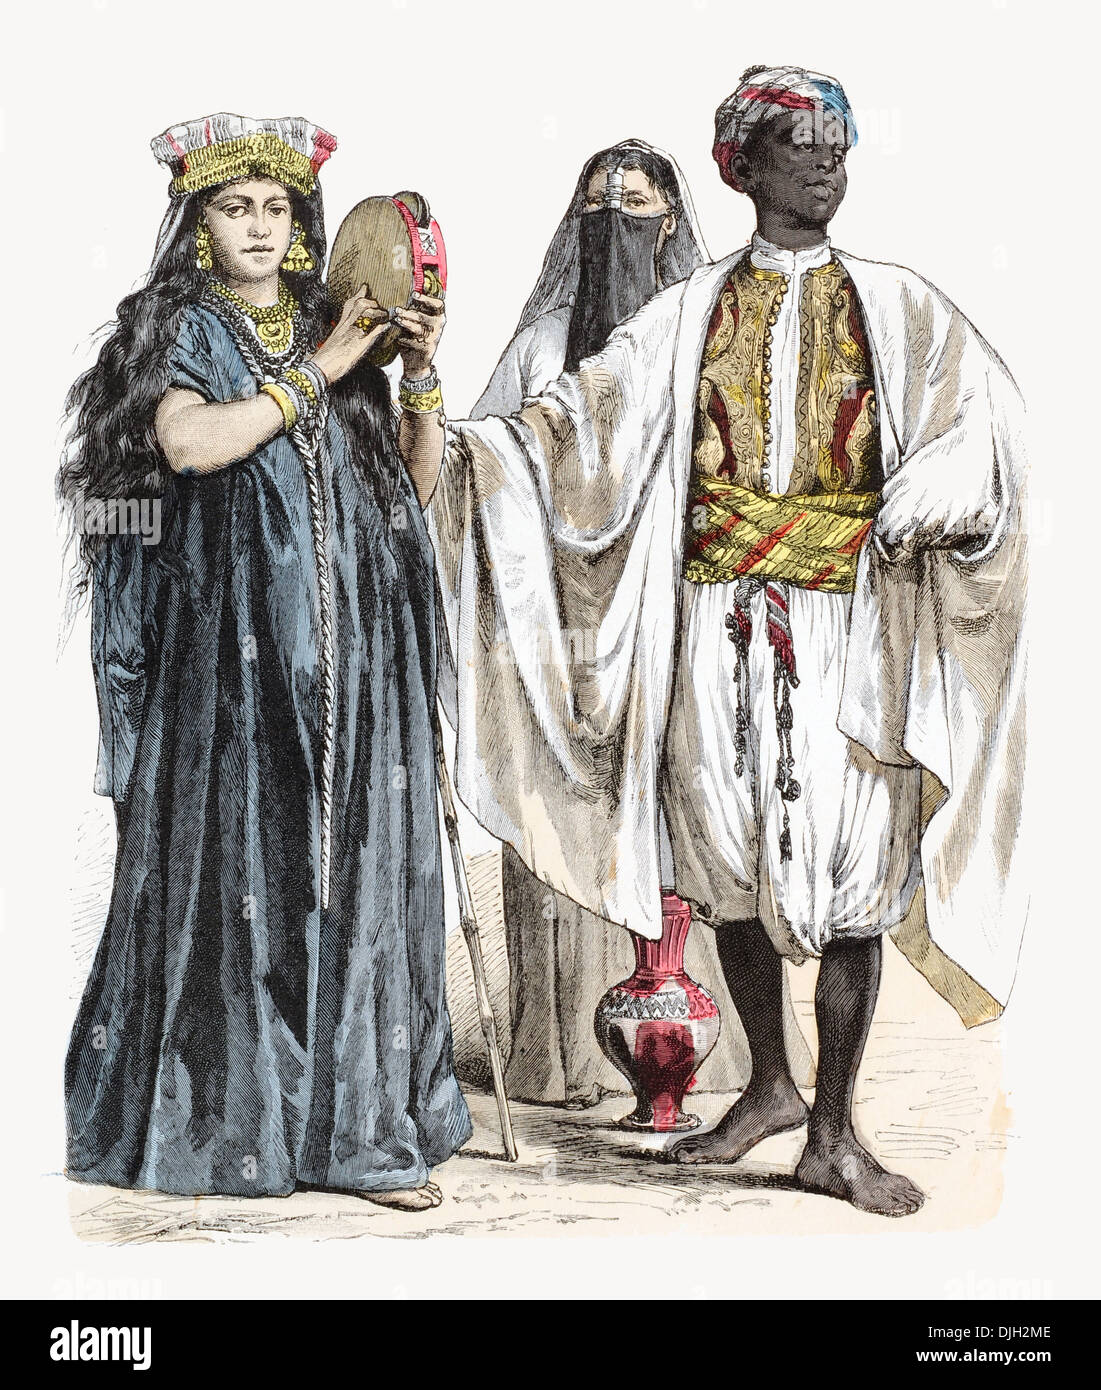 19th century XIX Egyptian playing a tambourine, Muslim female water carrier and n African servant - Stock Image